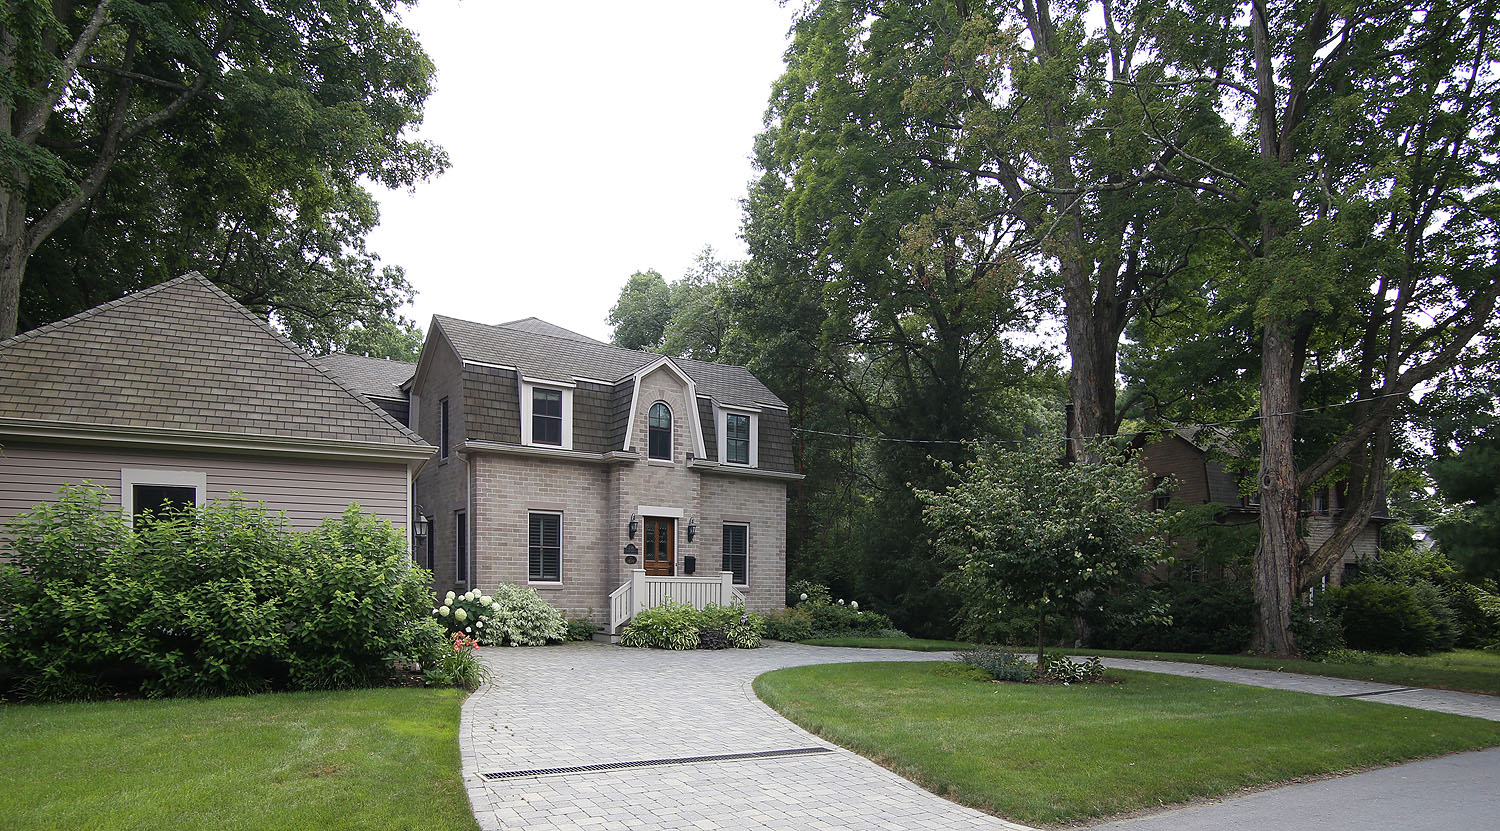 Homes for sale near lasell college in newton ma for Home for sale in mass